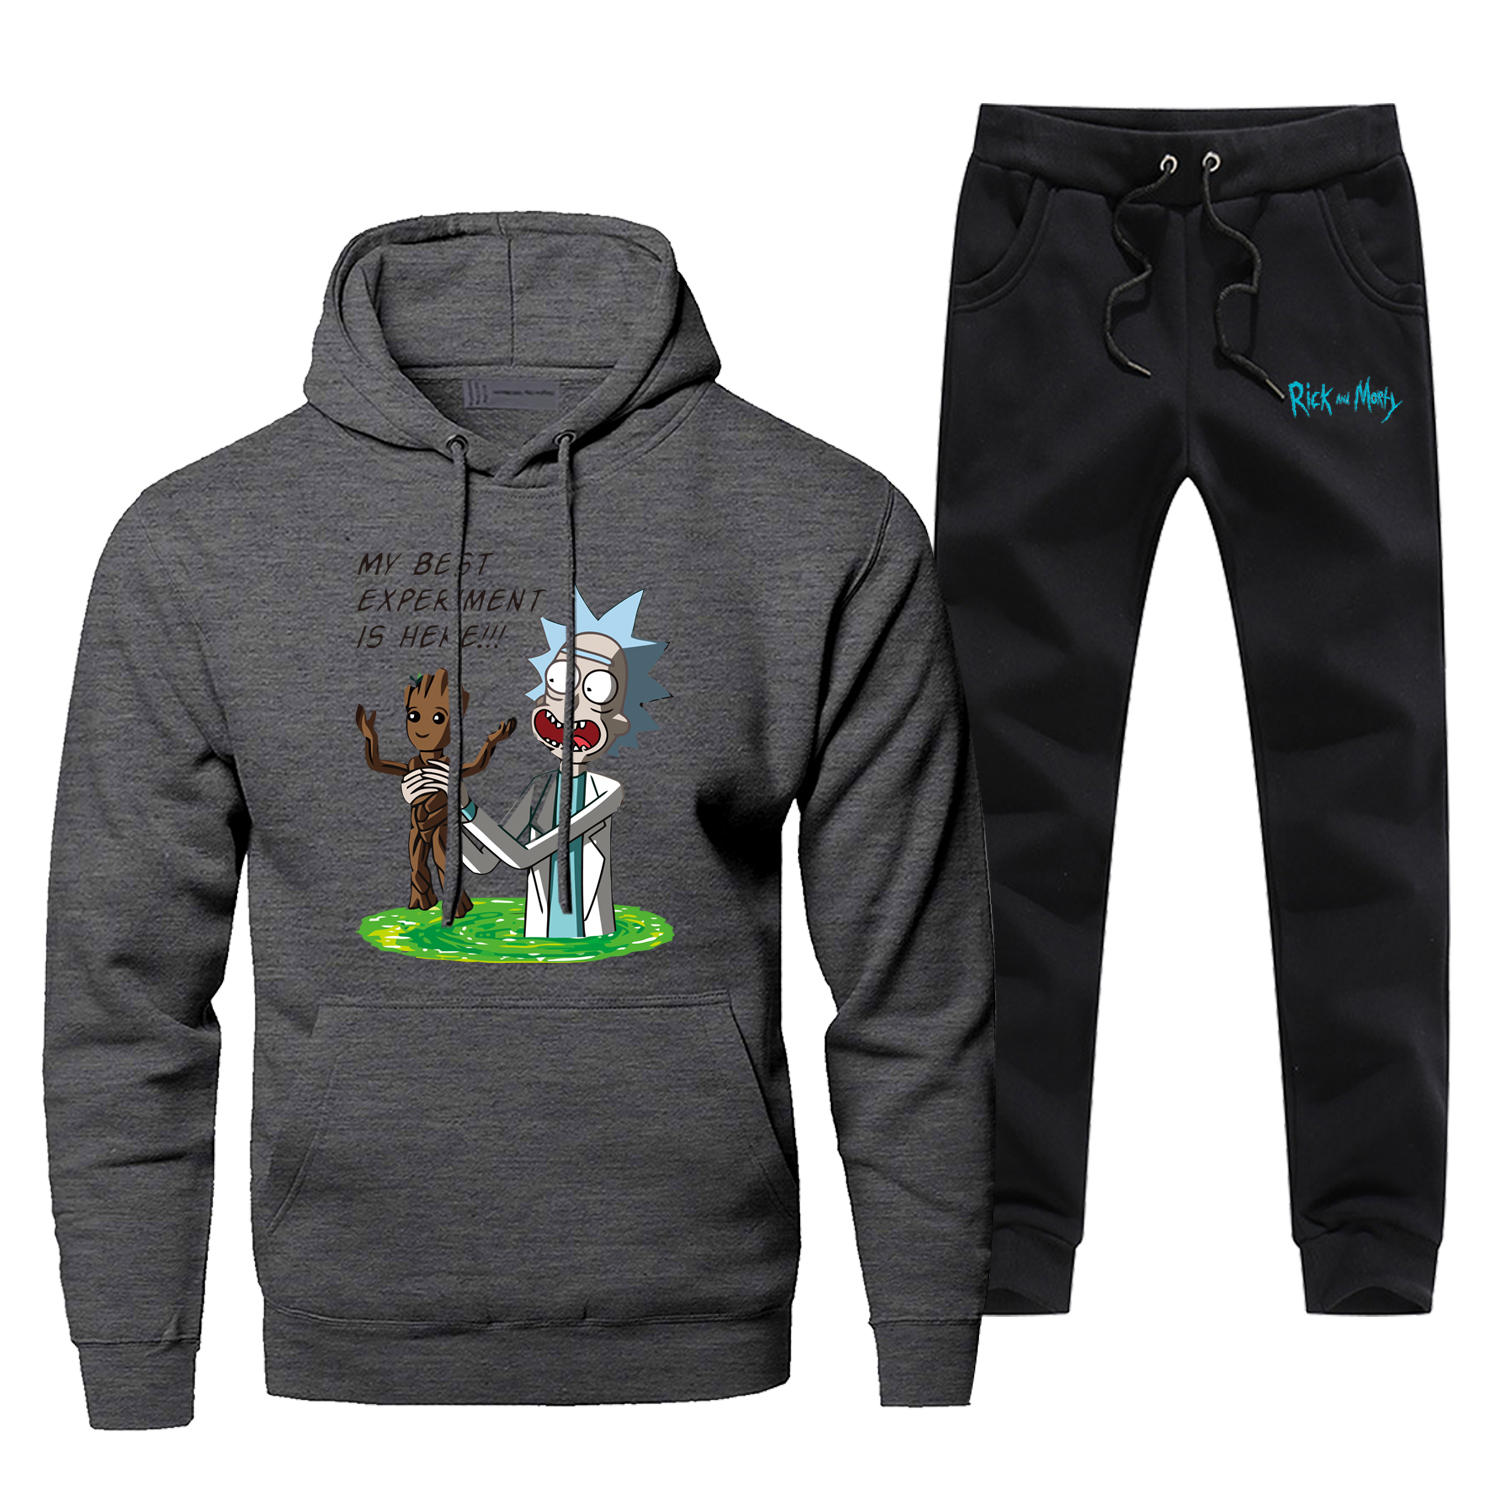 I Am Groot Men's Jogging Anime Rick And Morty Fashion Mens Full Suit Tracksuit Winter Bodywarmer Male Set Funny Fleece Gym Suit